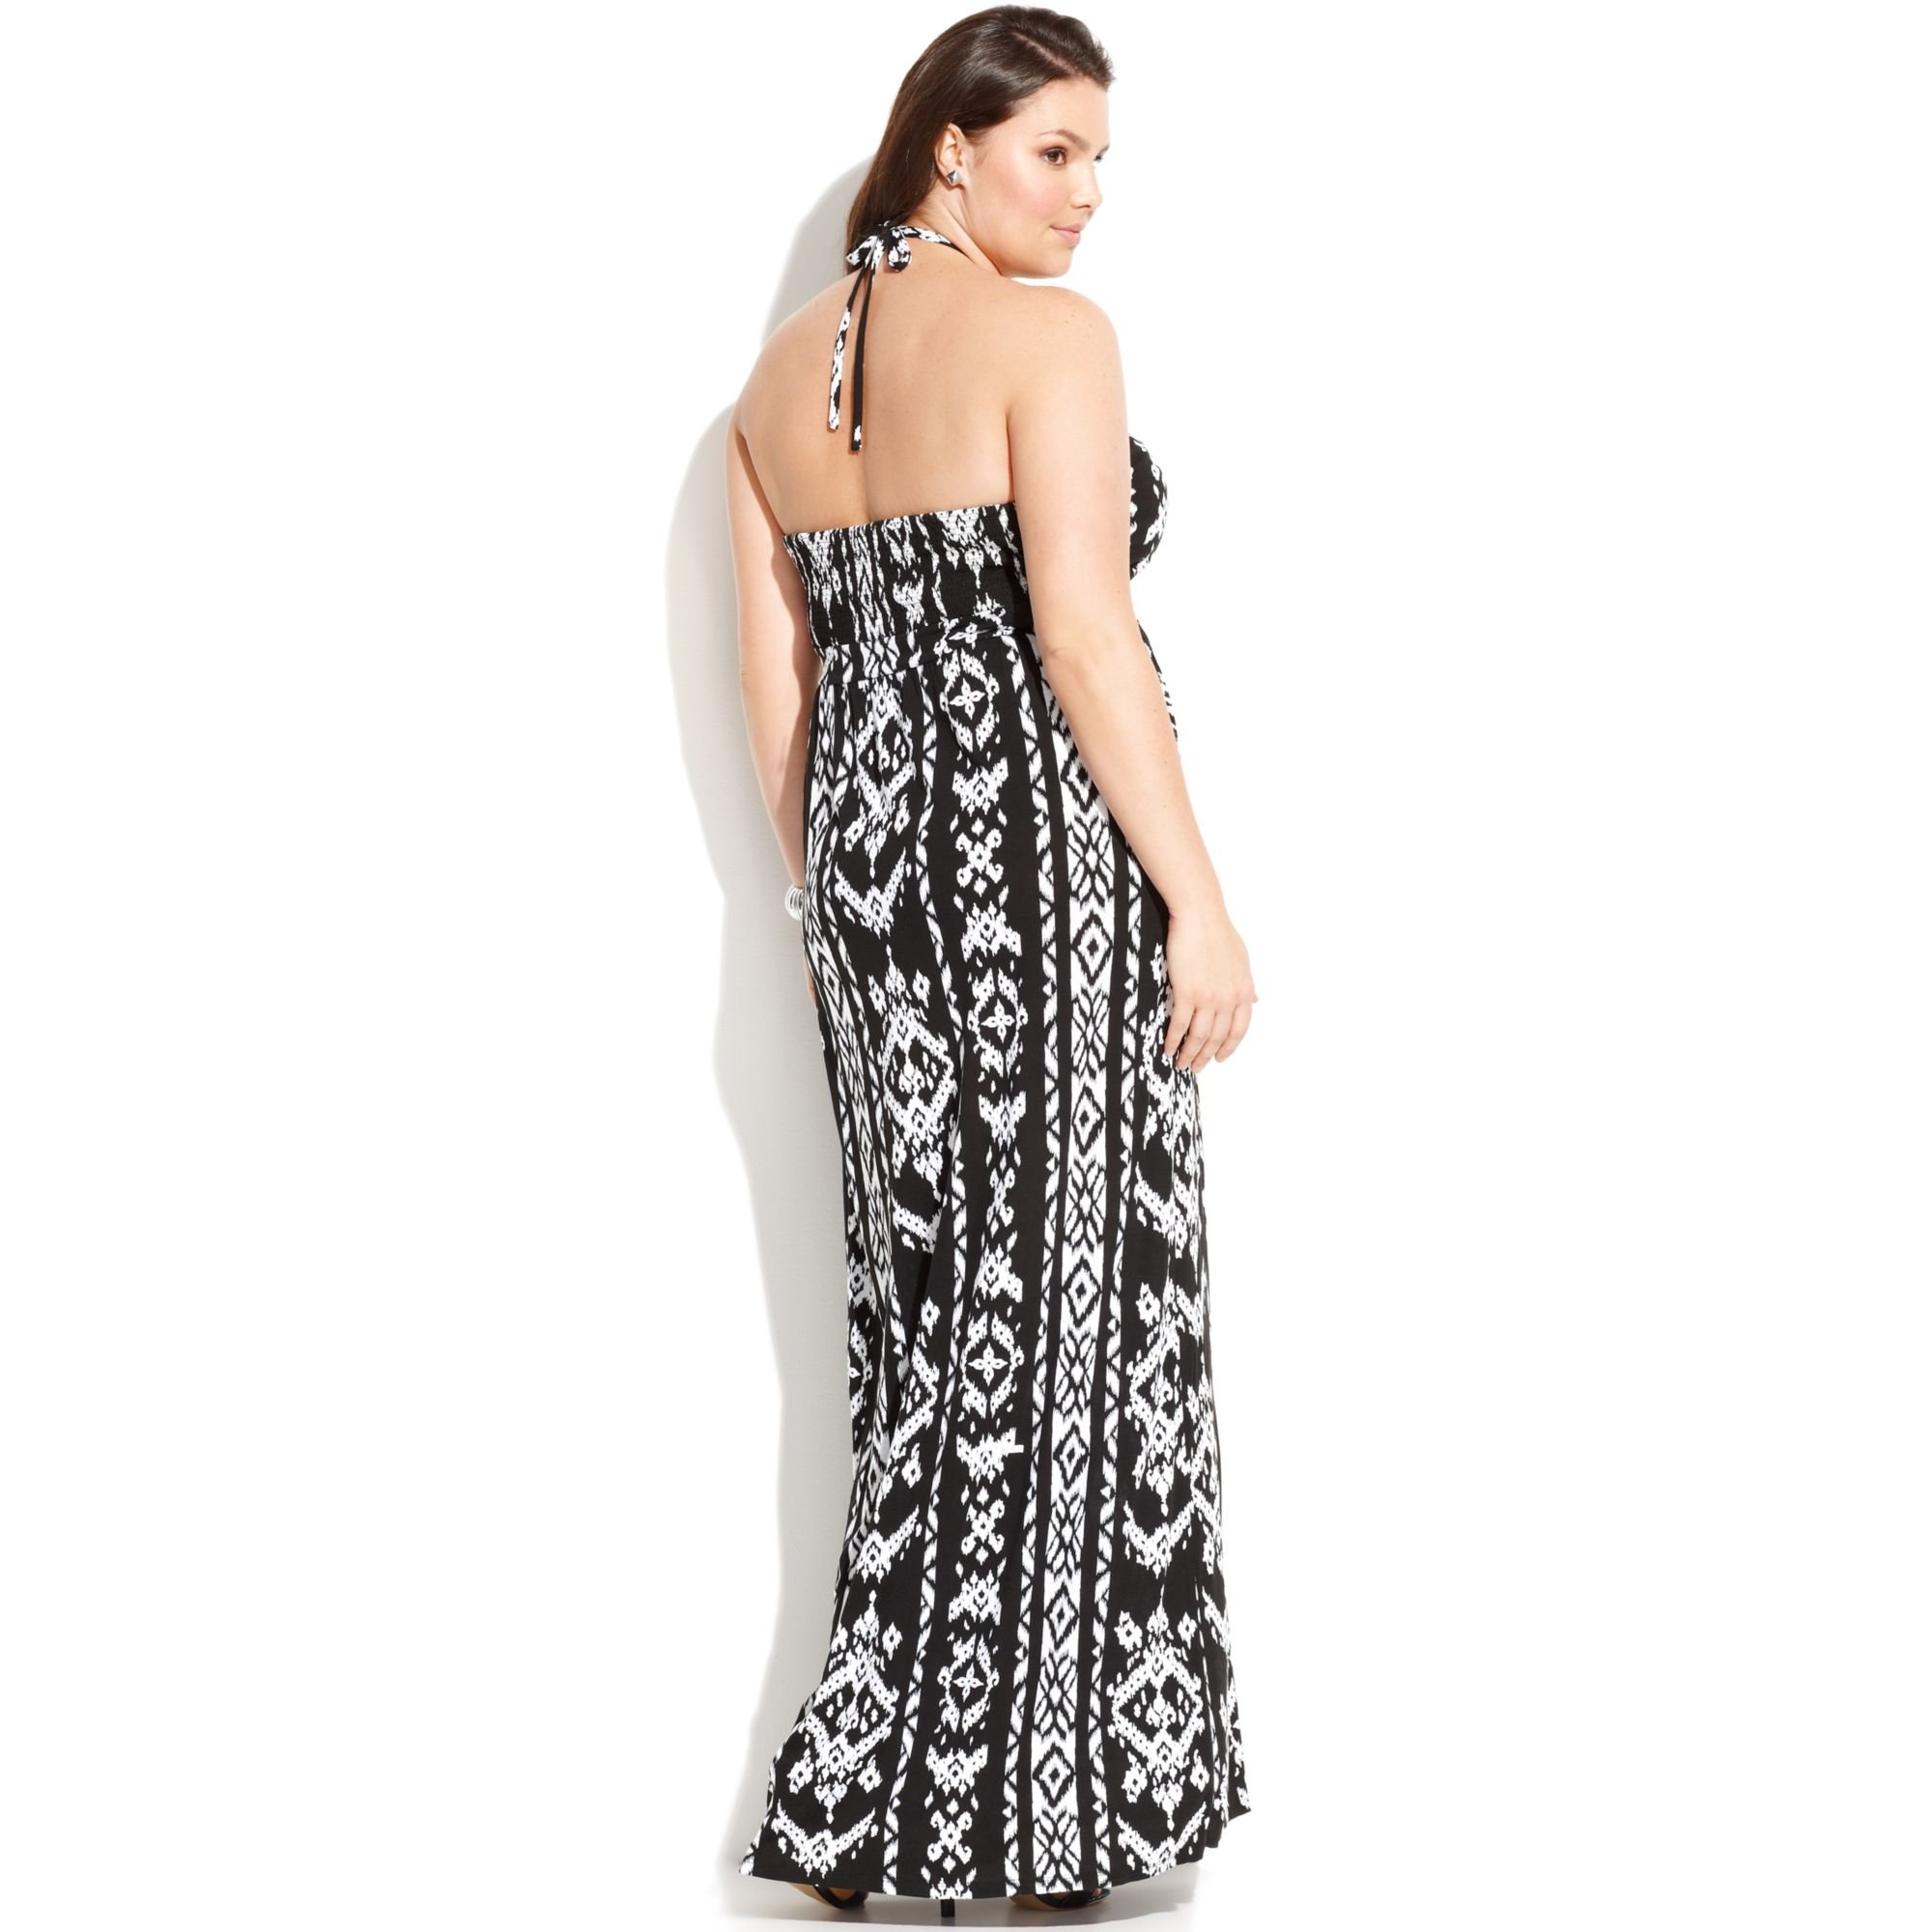 d3545745b2d6d Lyst - INC International Concepts Plus Size Embellished Printed ...